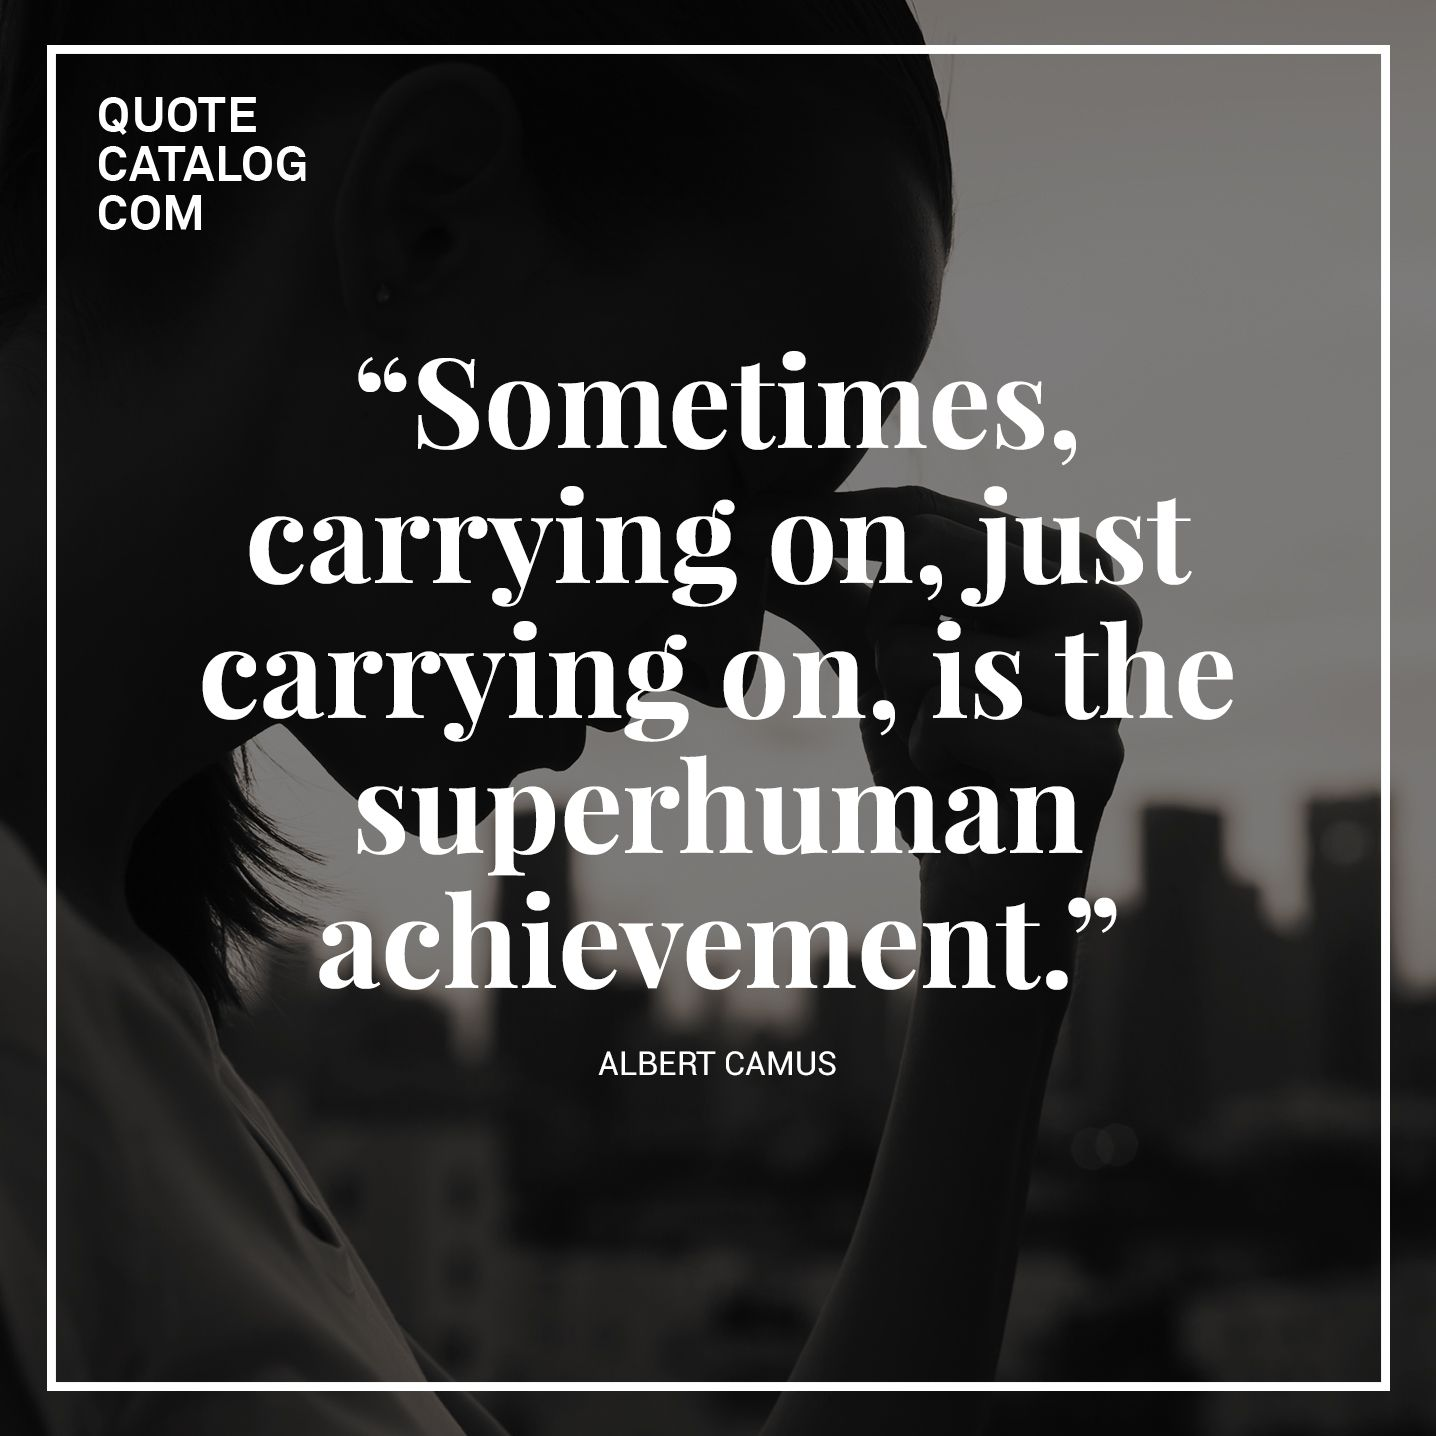 Albert Camus Quotes Glamorous Sometimes Carrying On Just Carrying On Is The Superhuman